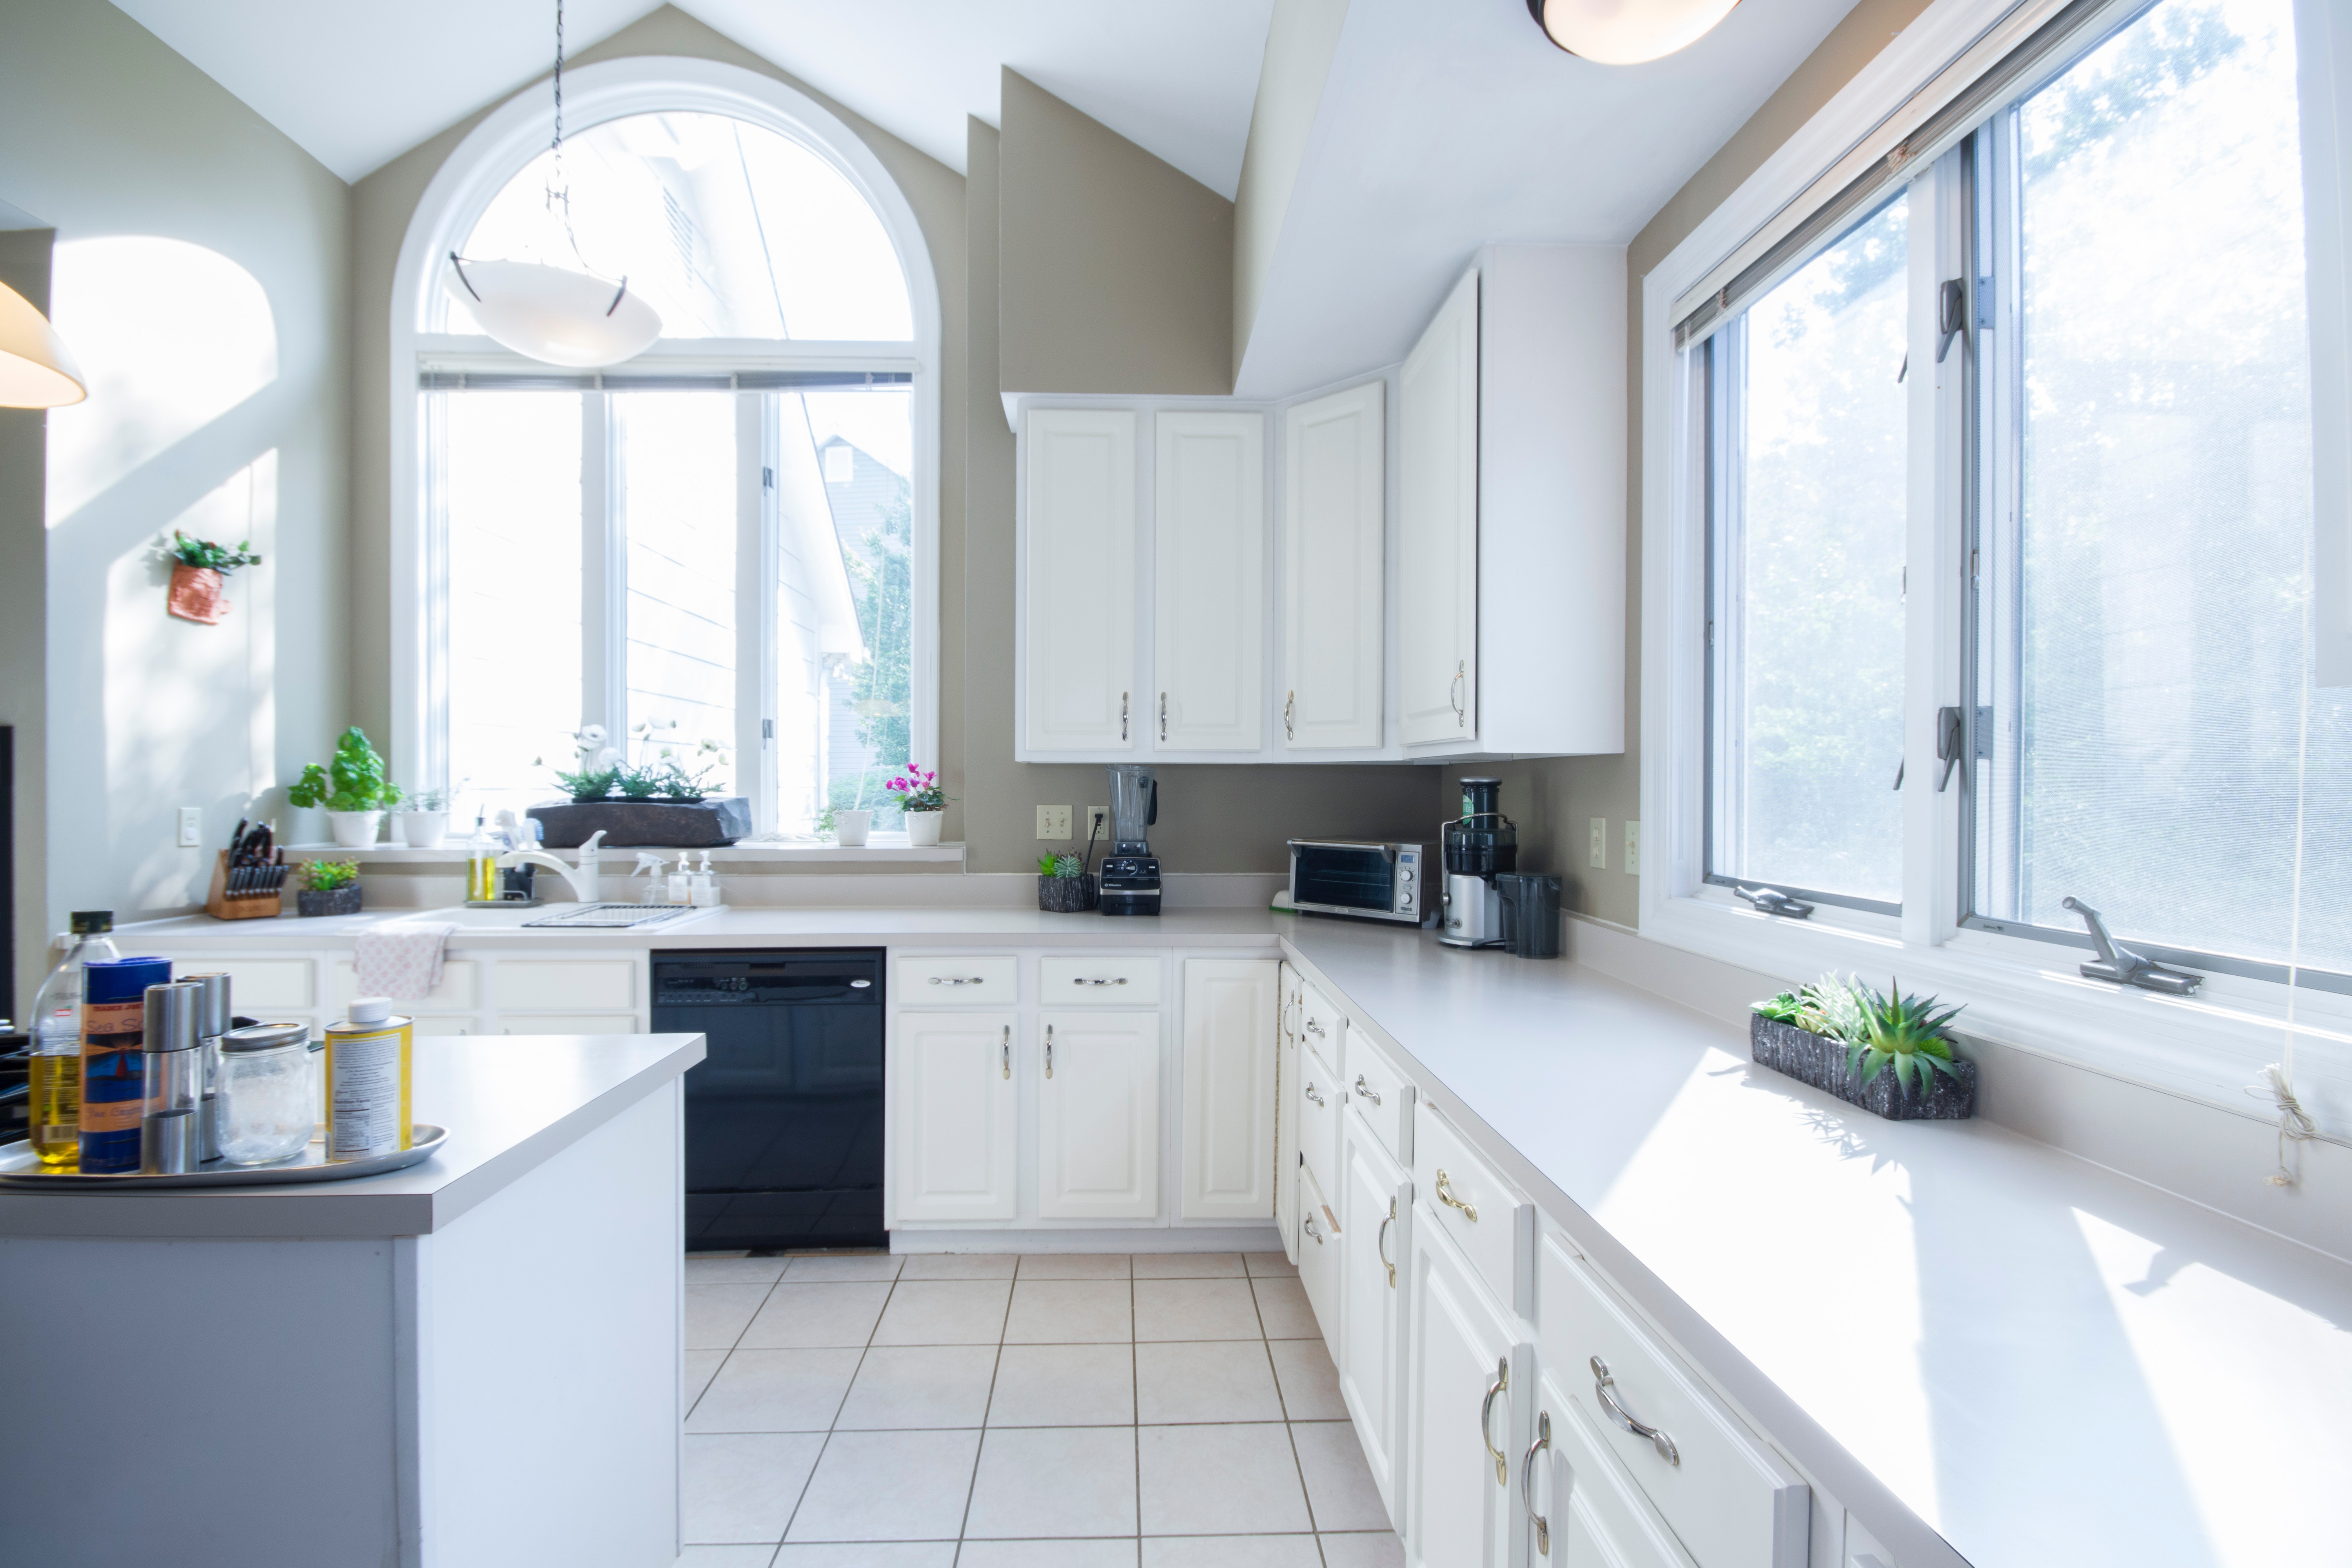 Don't Let Your Kitchen Sabotage Your Open House